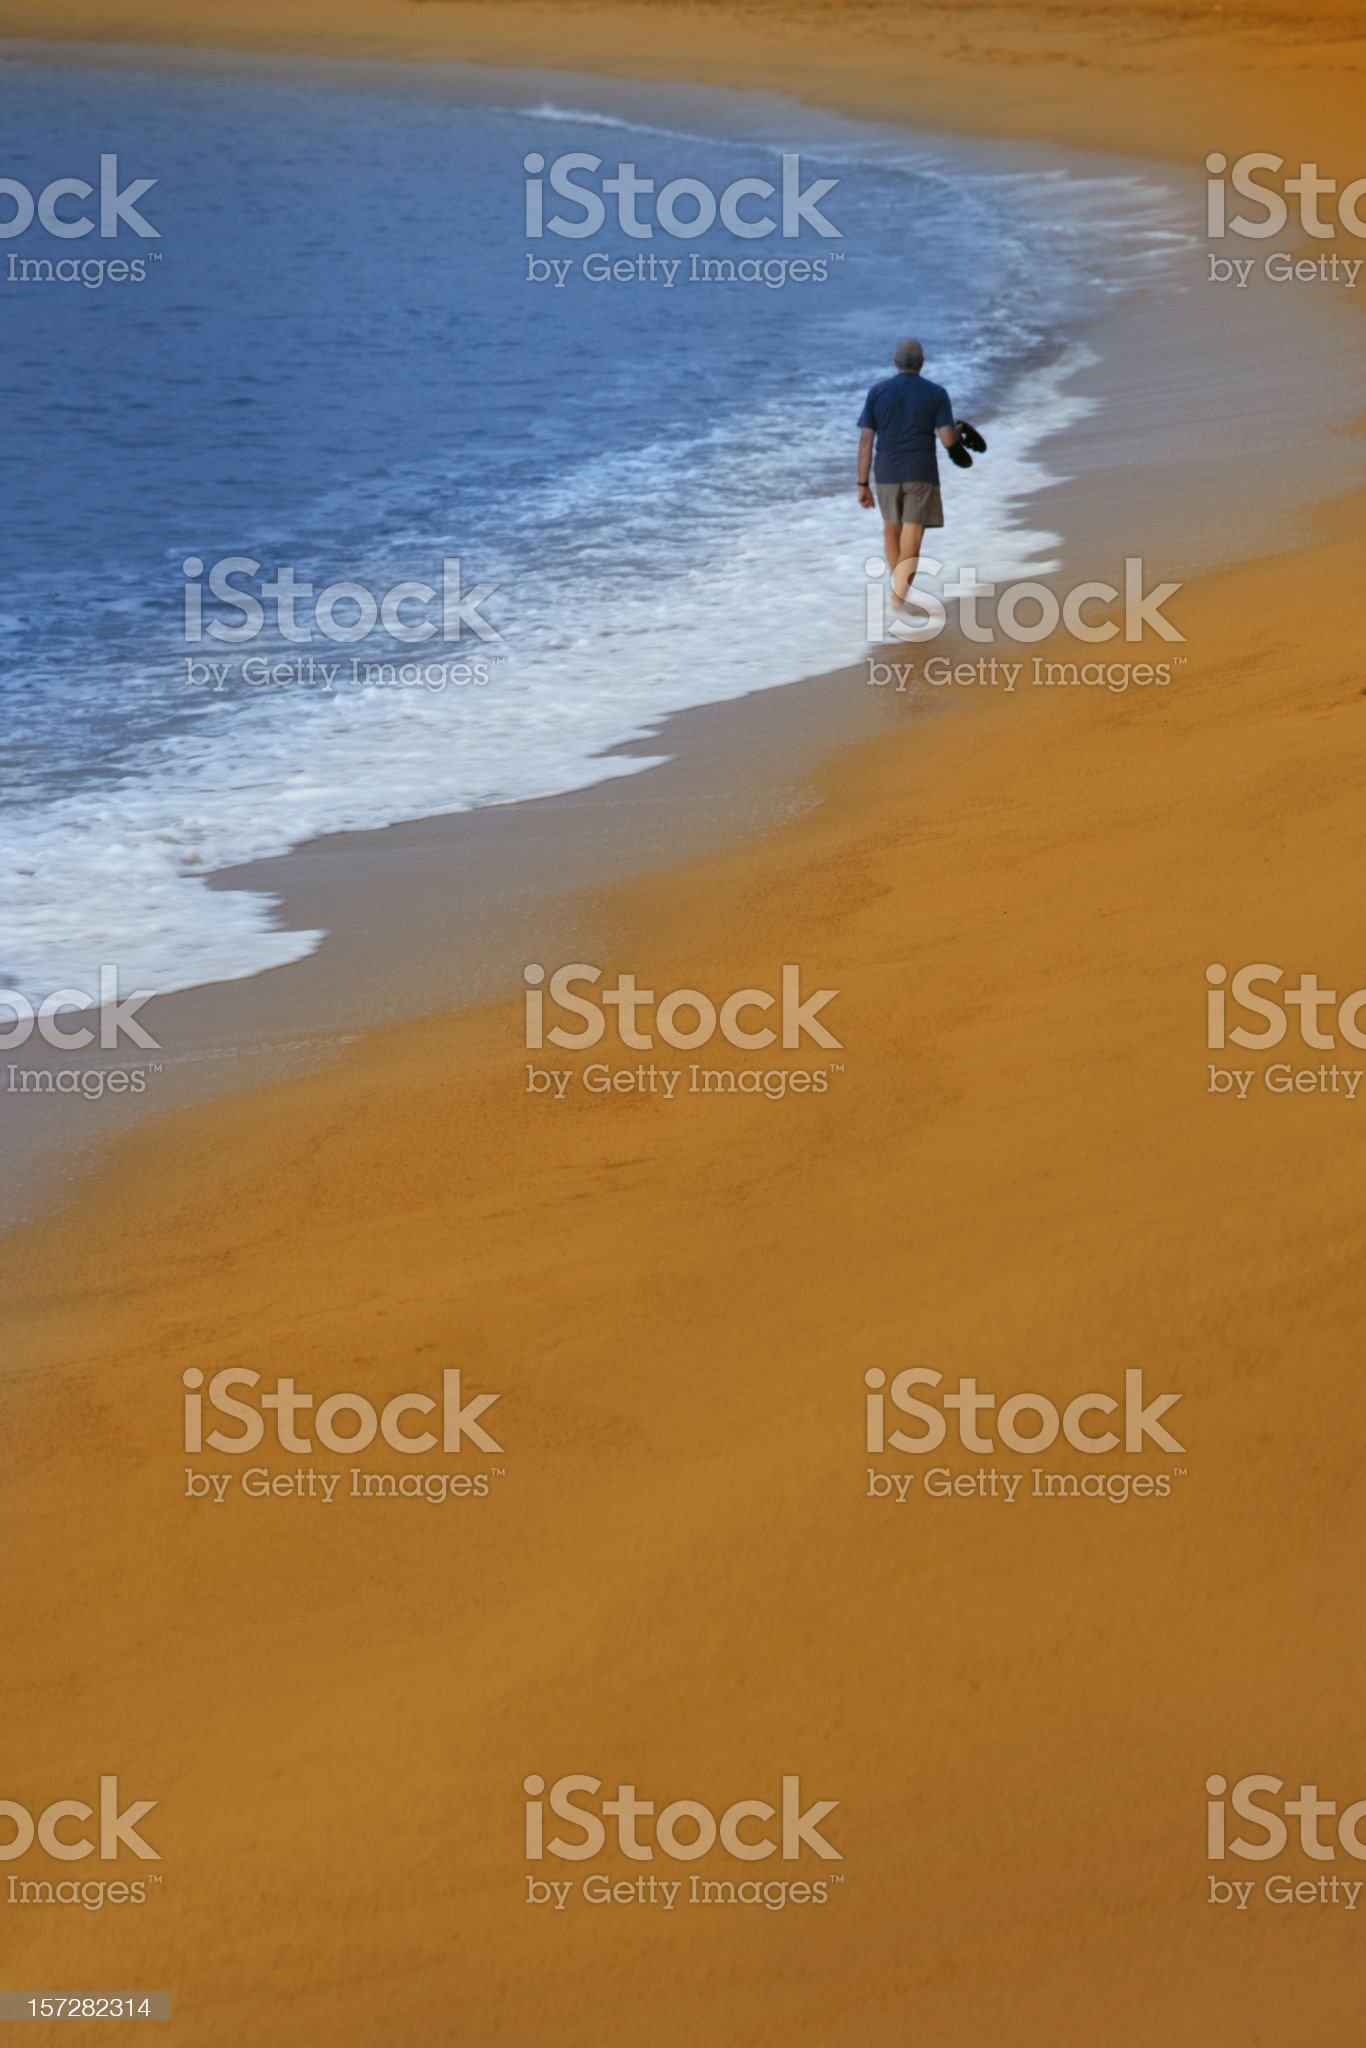 Walk in paradise royalty-free stock photo